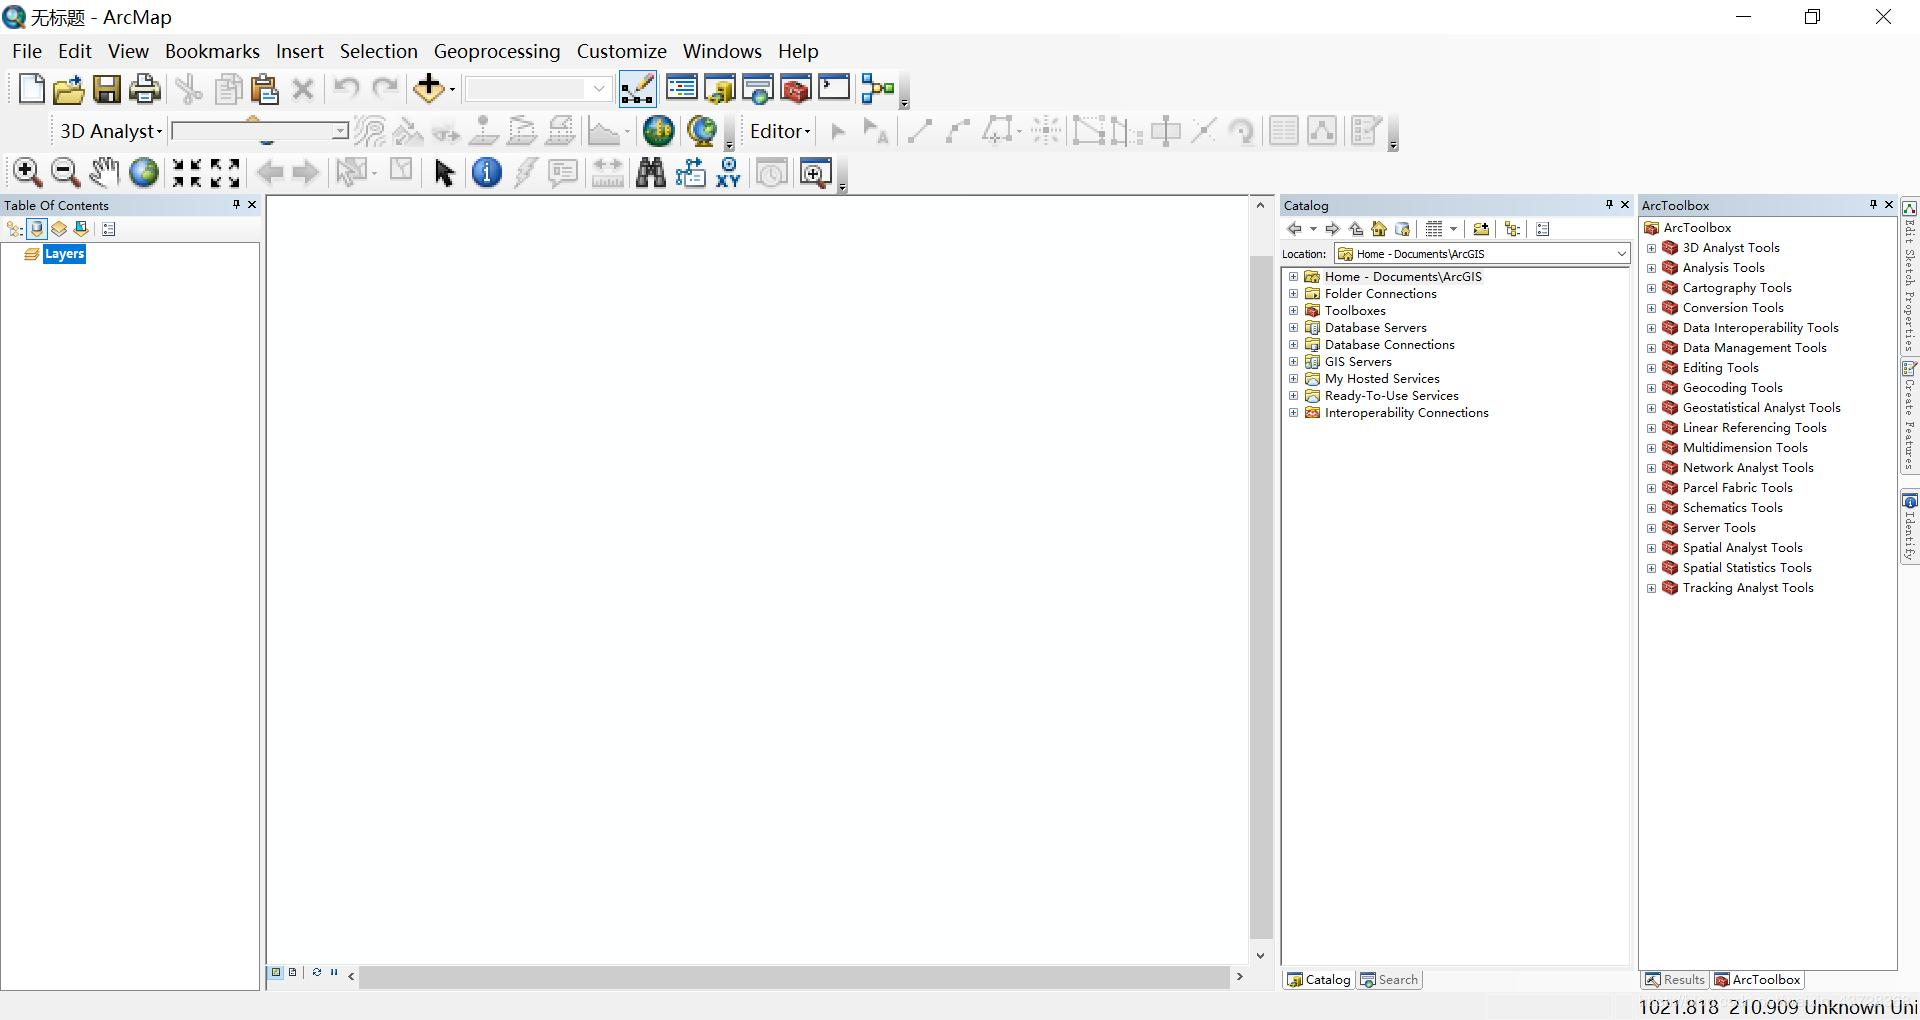 Fonts for ArcGIS menu bars, catalogs, toolboxes, etc  are